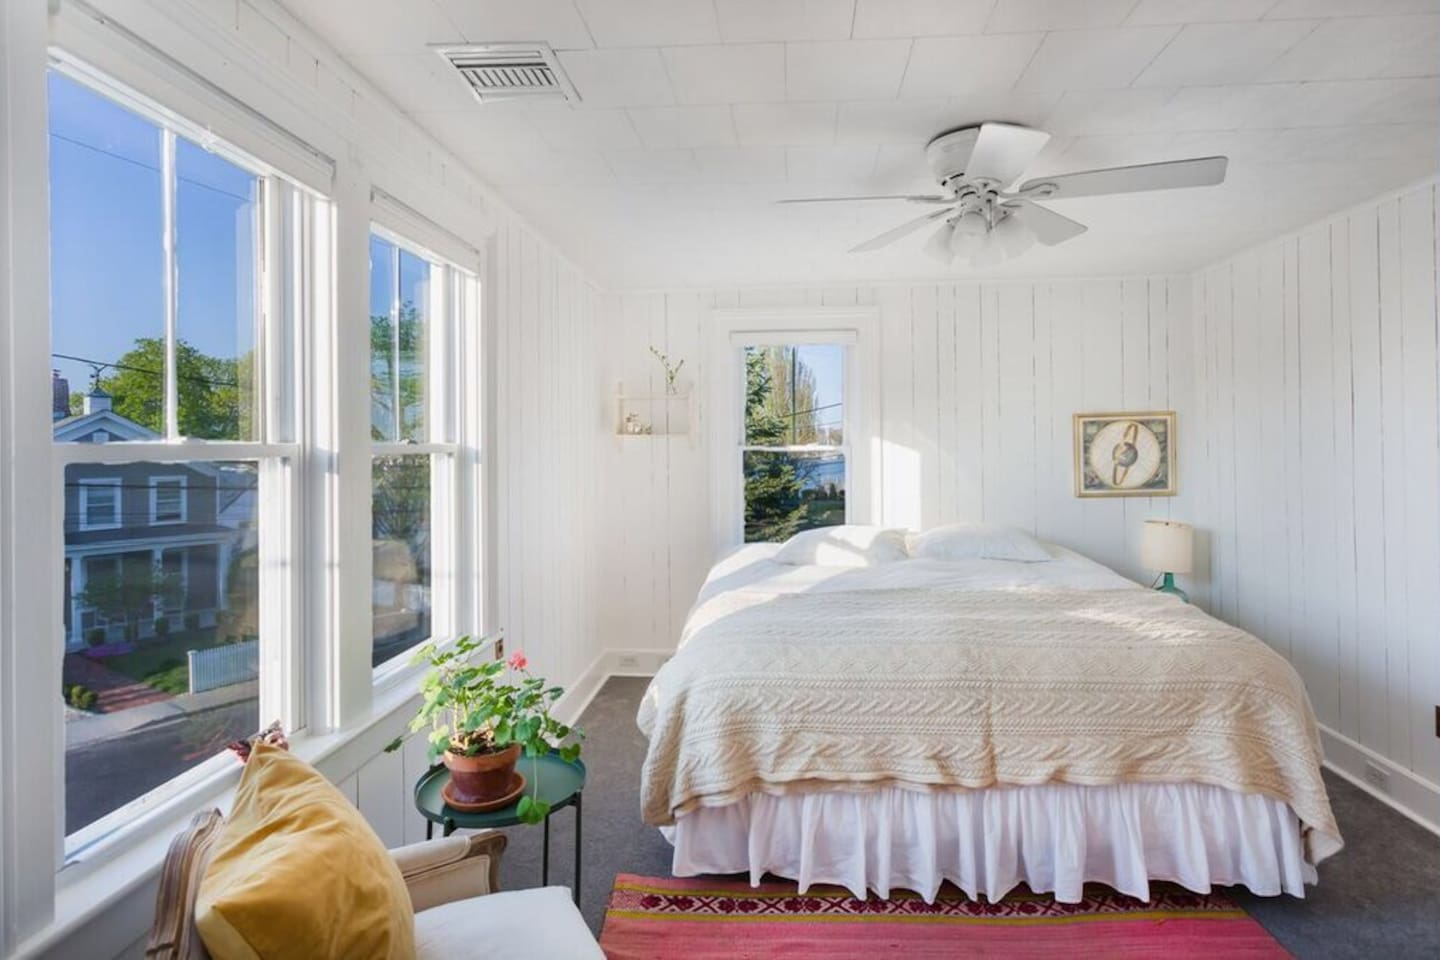 A room with a view! Enjoy waking up in this king size bed with Harbour view.